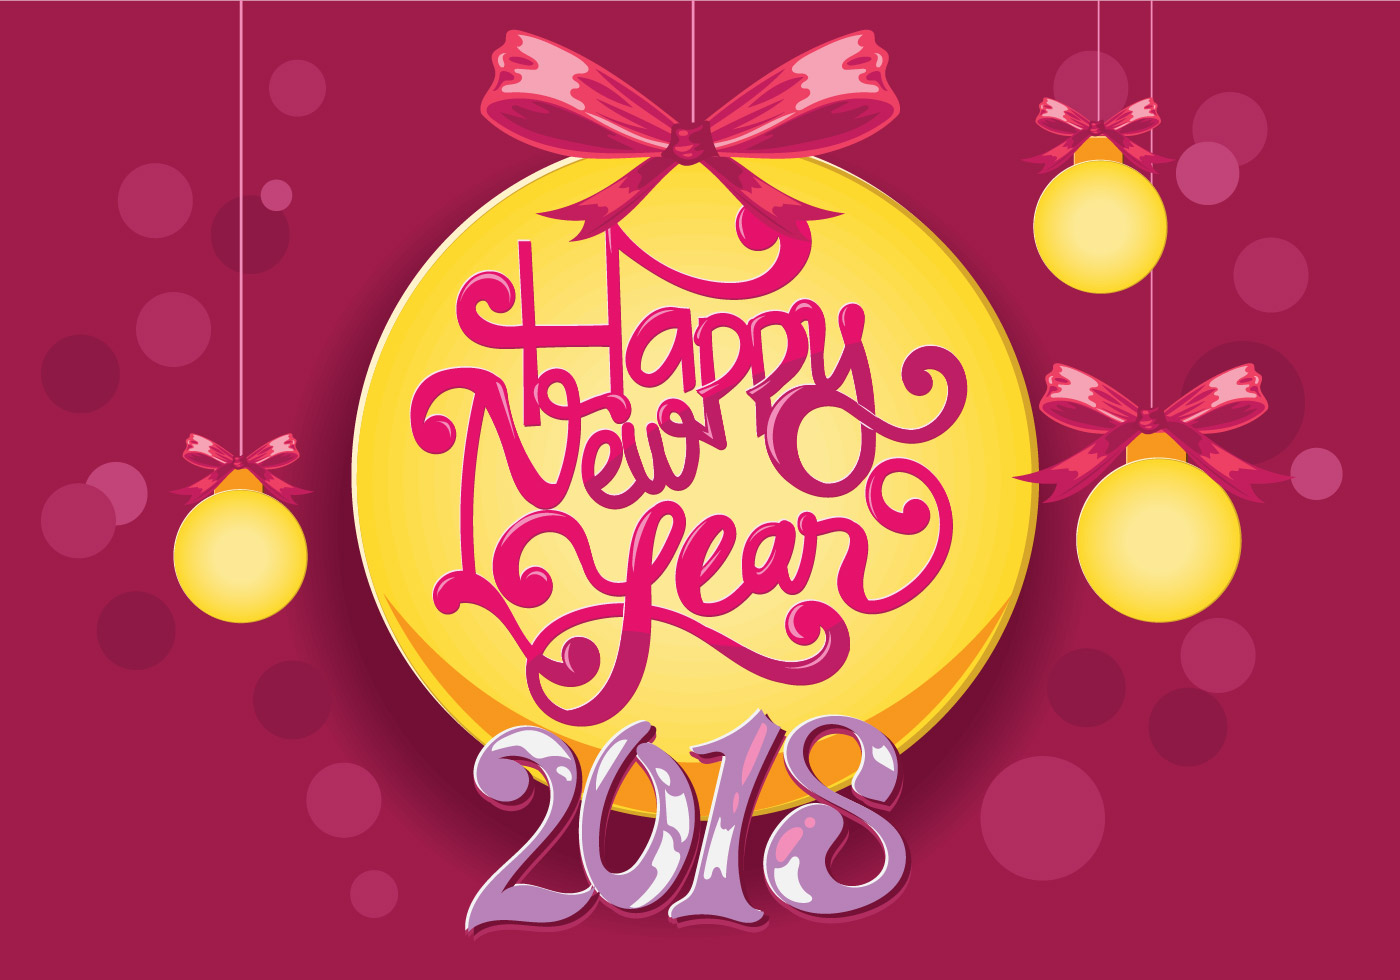 Happy New Year 2018 Hand Lettering Vector Download Free Vector Art